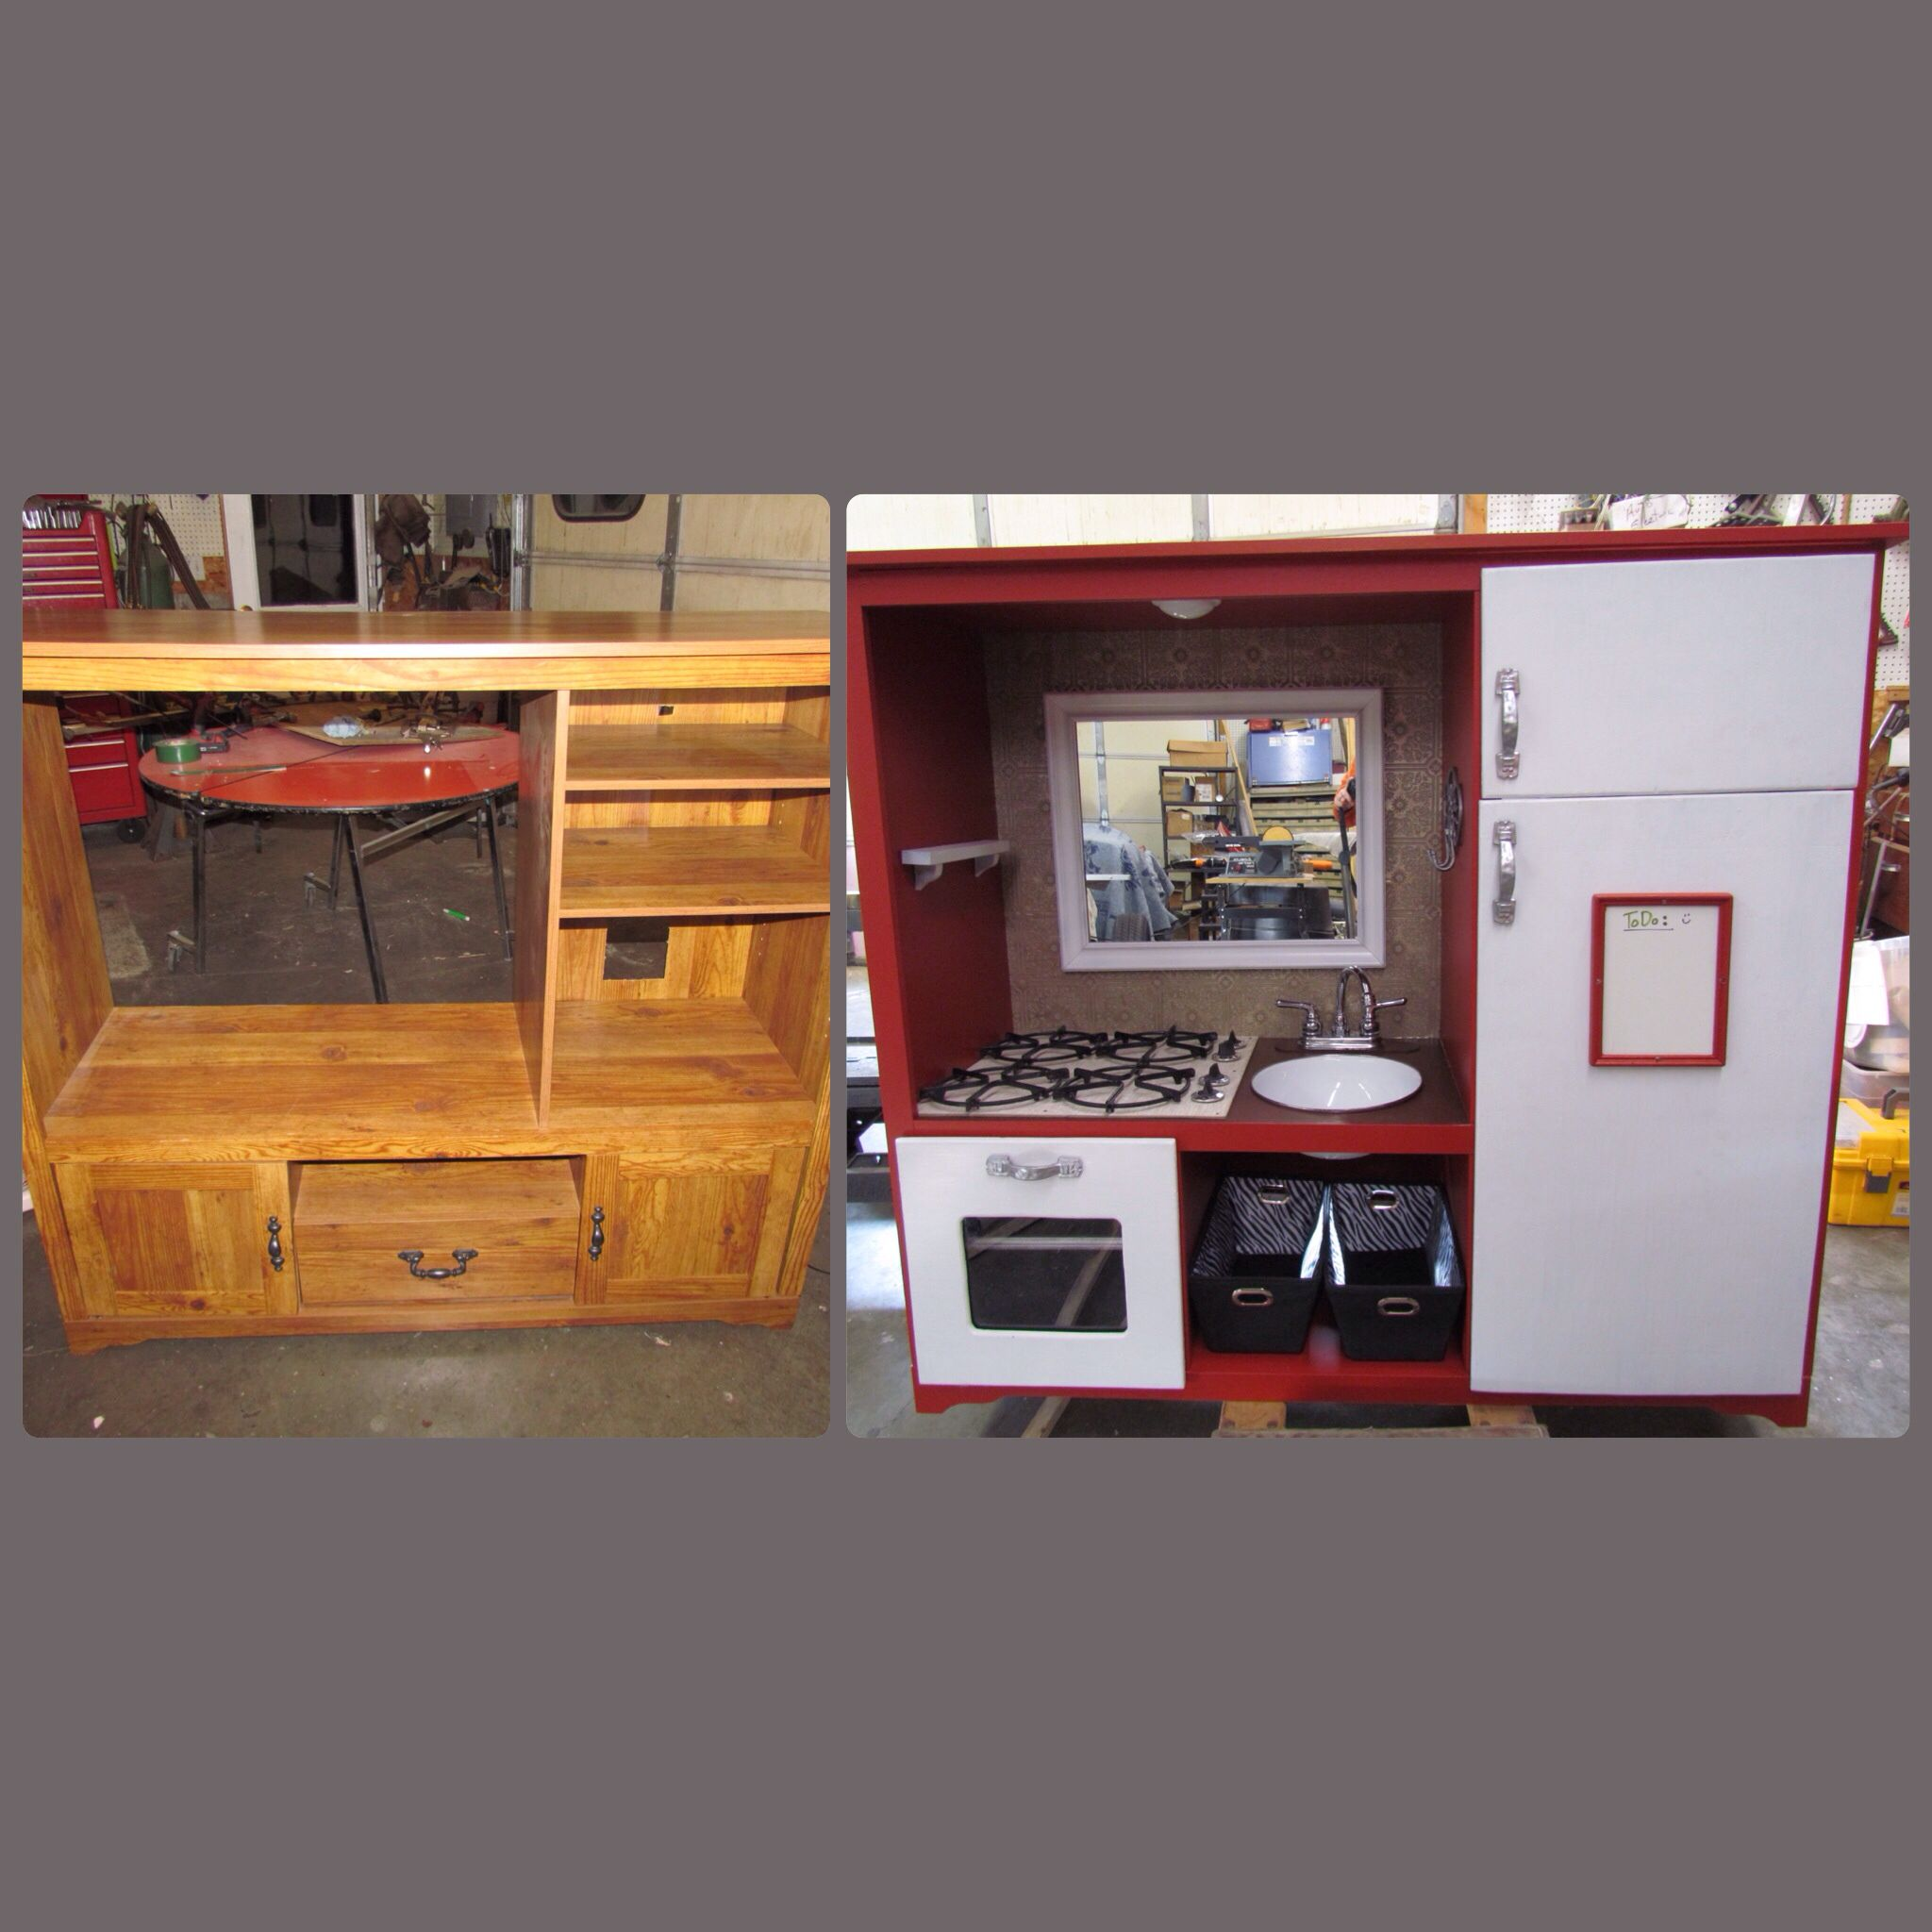 Entertainment Center Kitchen Set: Entertainment Center Turned Play Kitchen. Children's